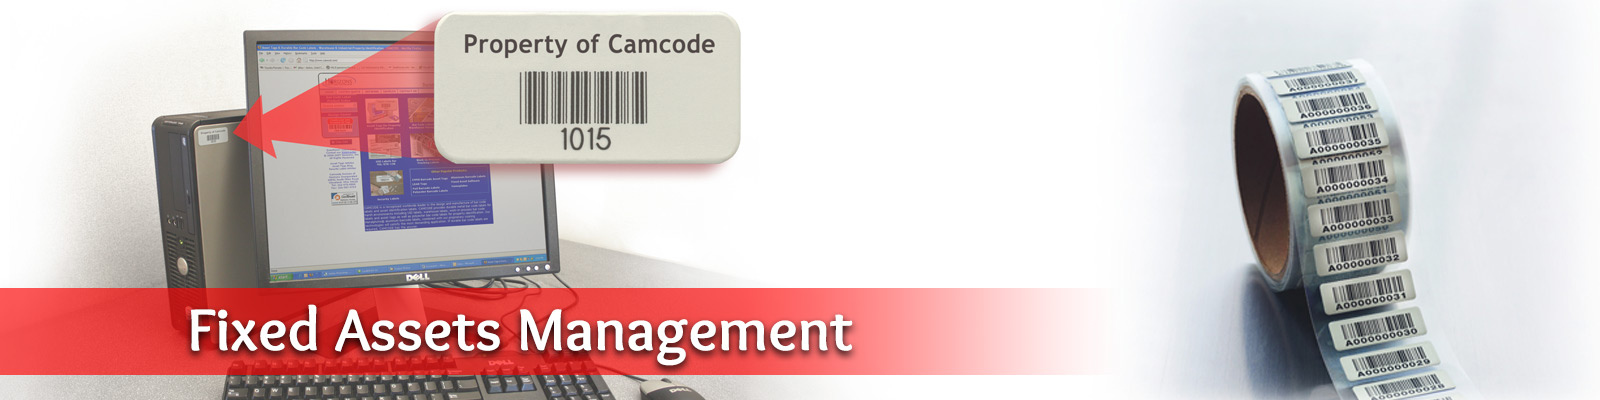 Fixed assets managament system